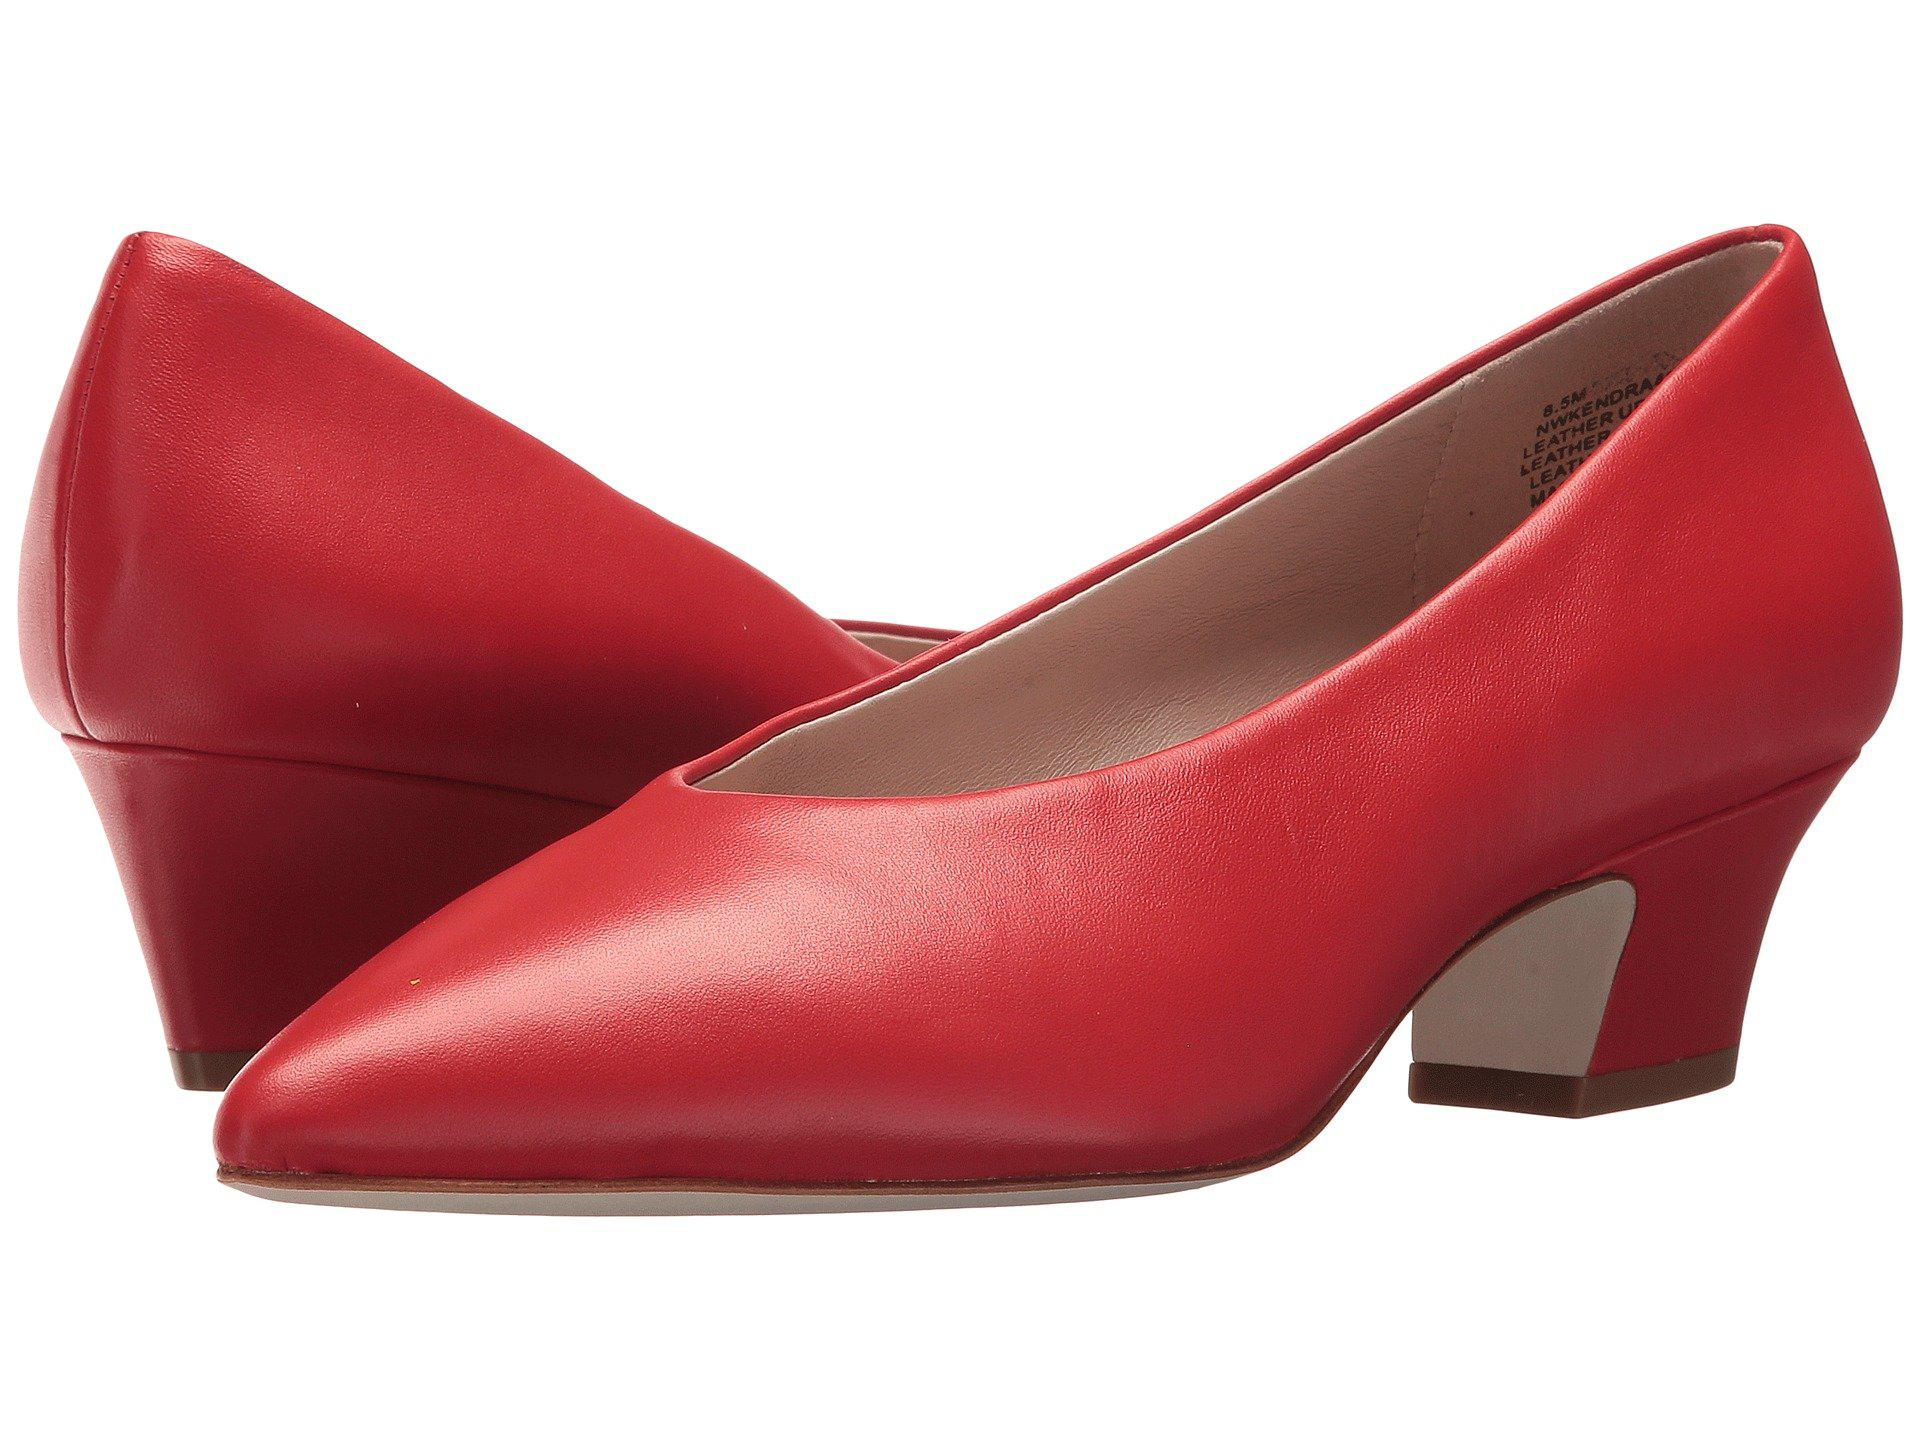 015c17fae90a Lyst - Nine West Kendra 40th Anniversary Pump in Red